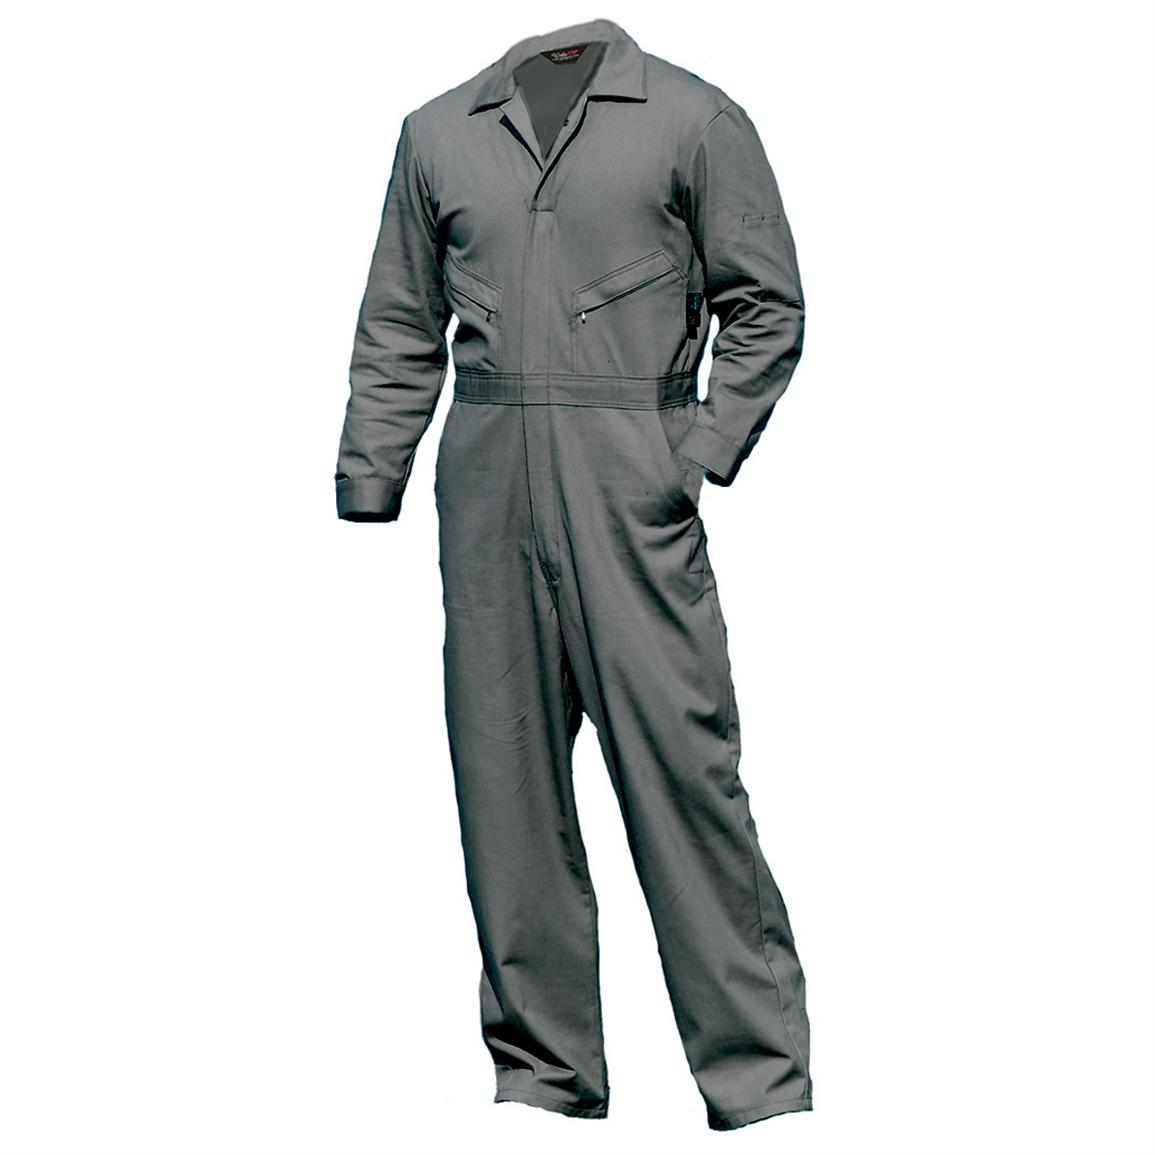 Walls Flame Resistant Industrial Coveralls, Grey